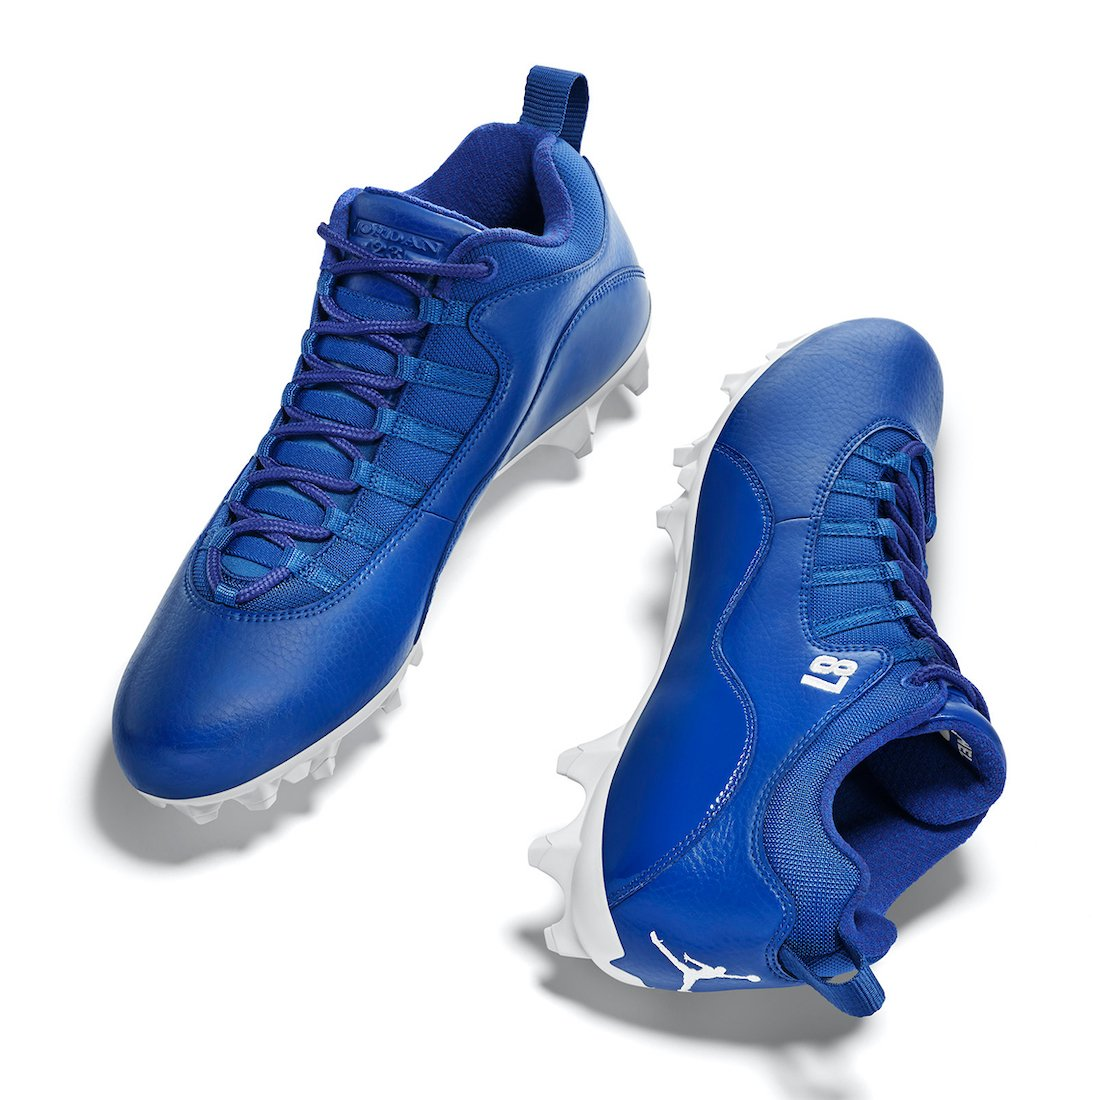 Sterling Shephard Air Jordan 10 NFL 2020 PE Cleats